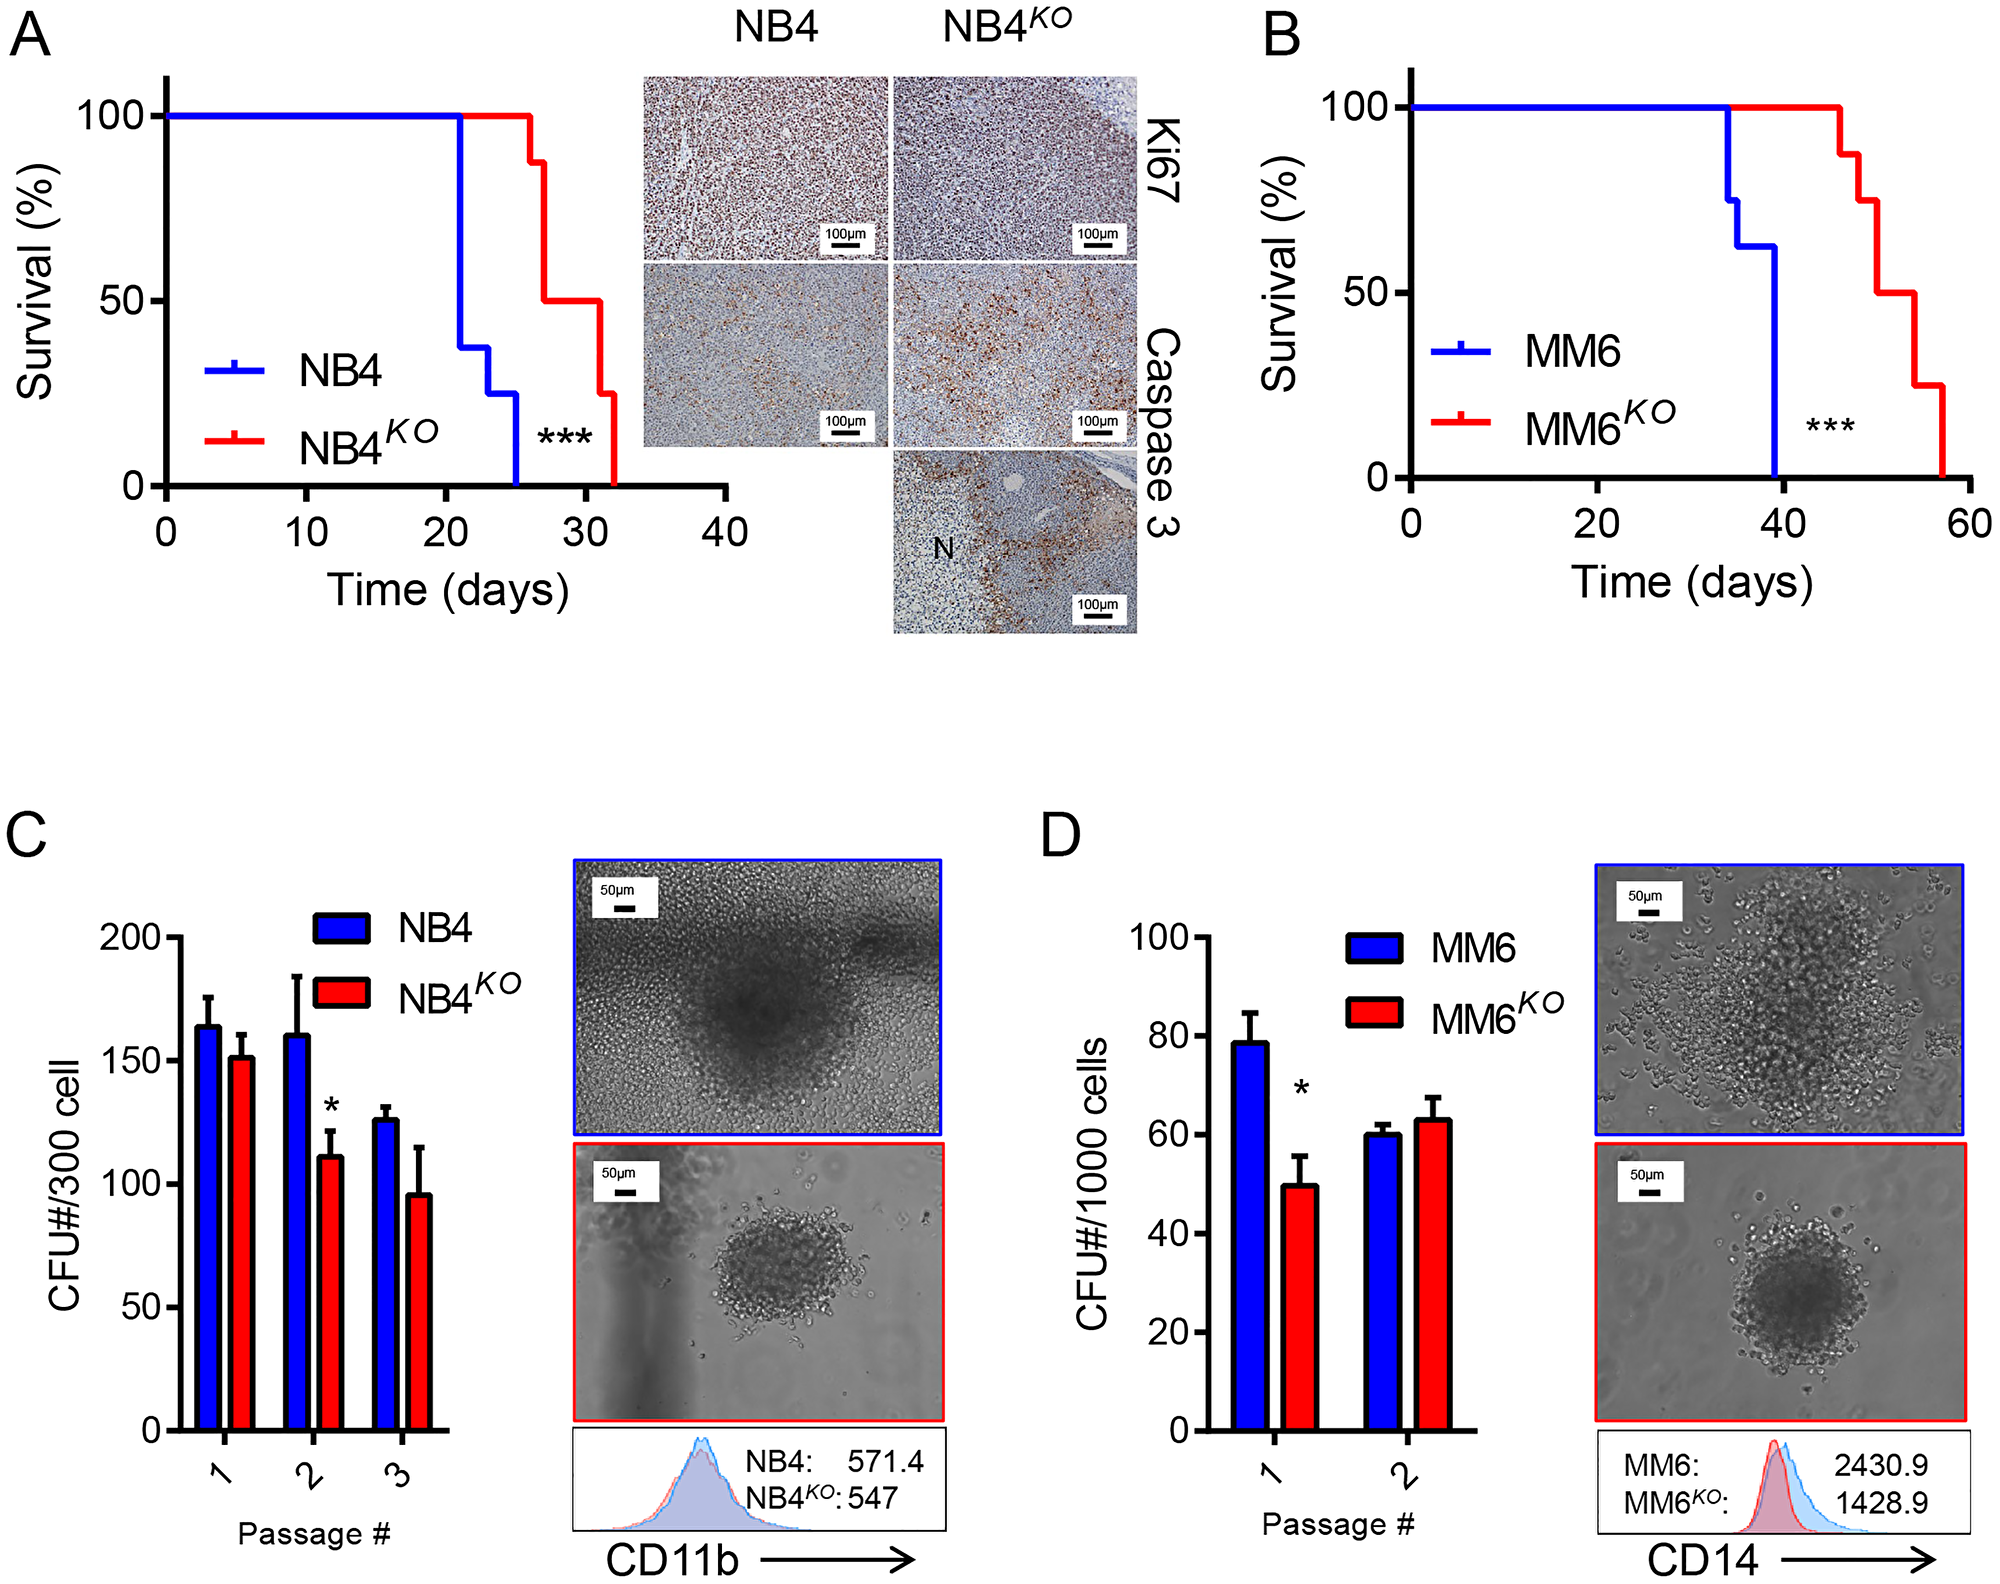 Loss of KLF4 reduces leukemia burden in a cell-based xenograft model.